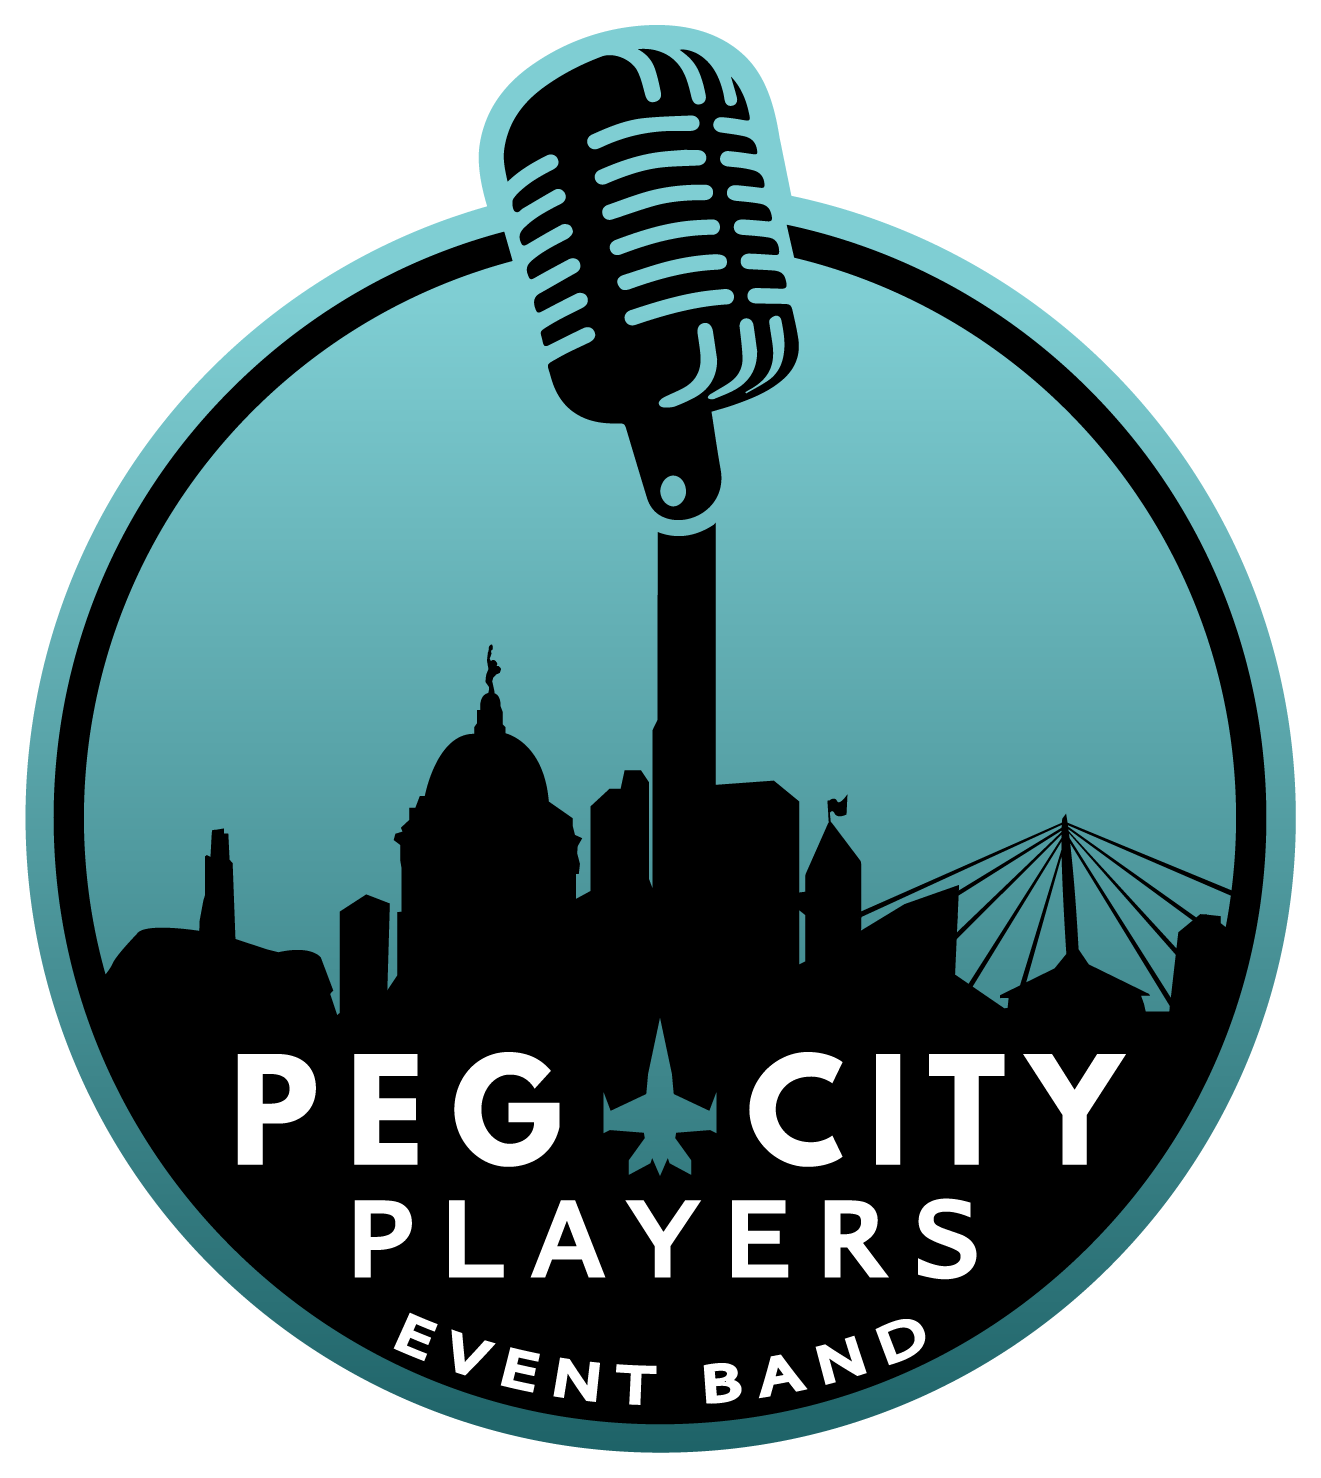 Peg City Players Event Band